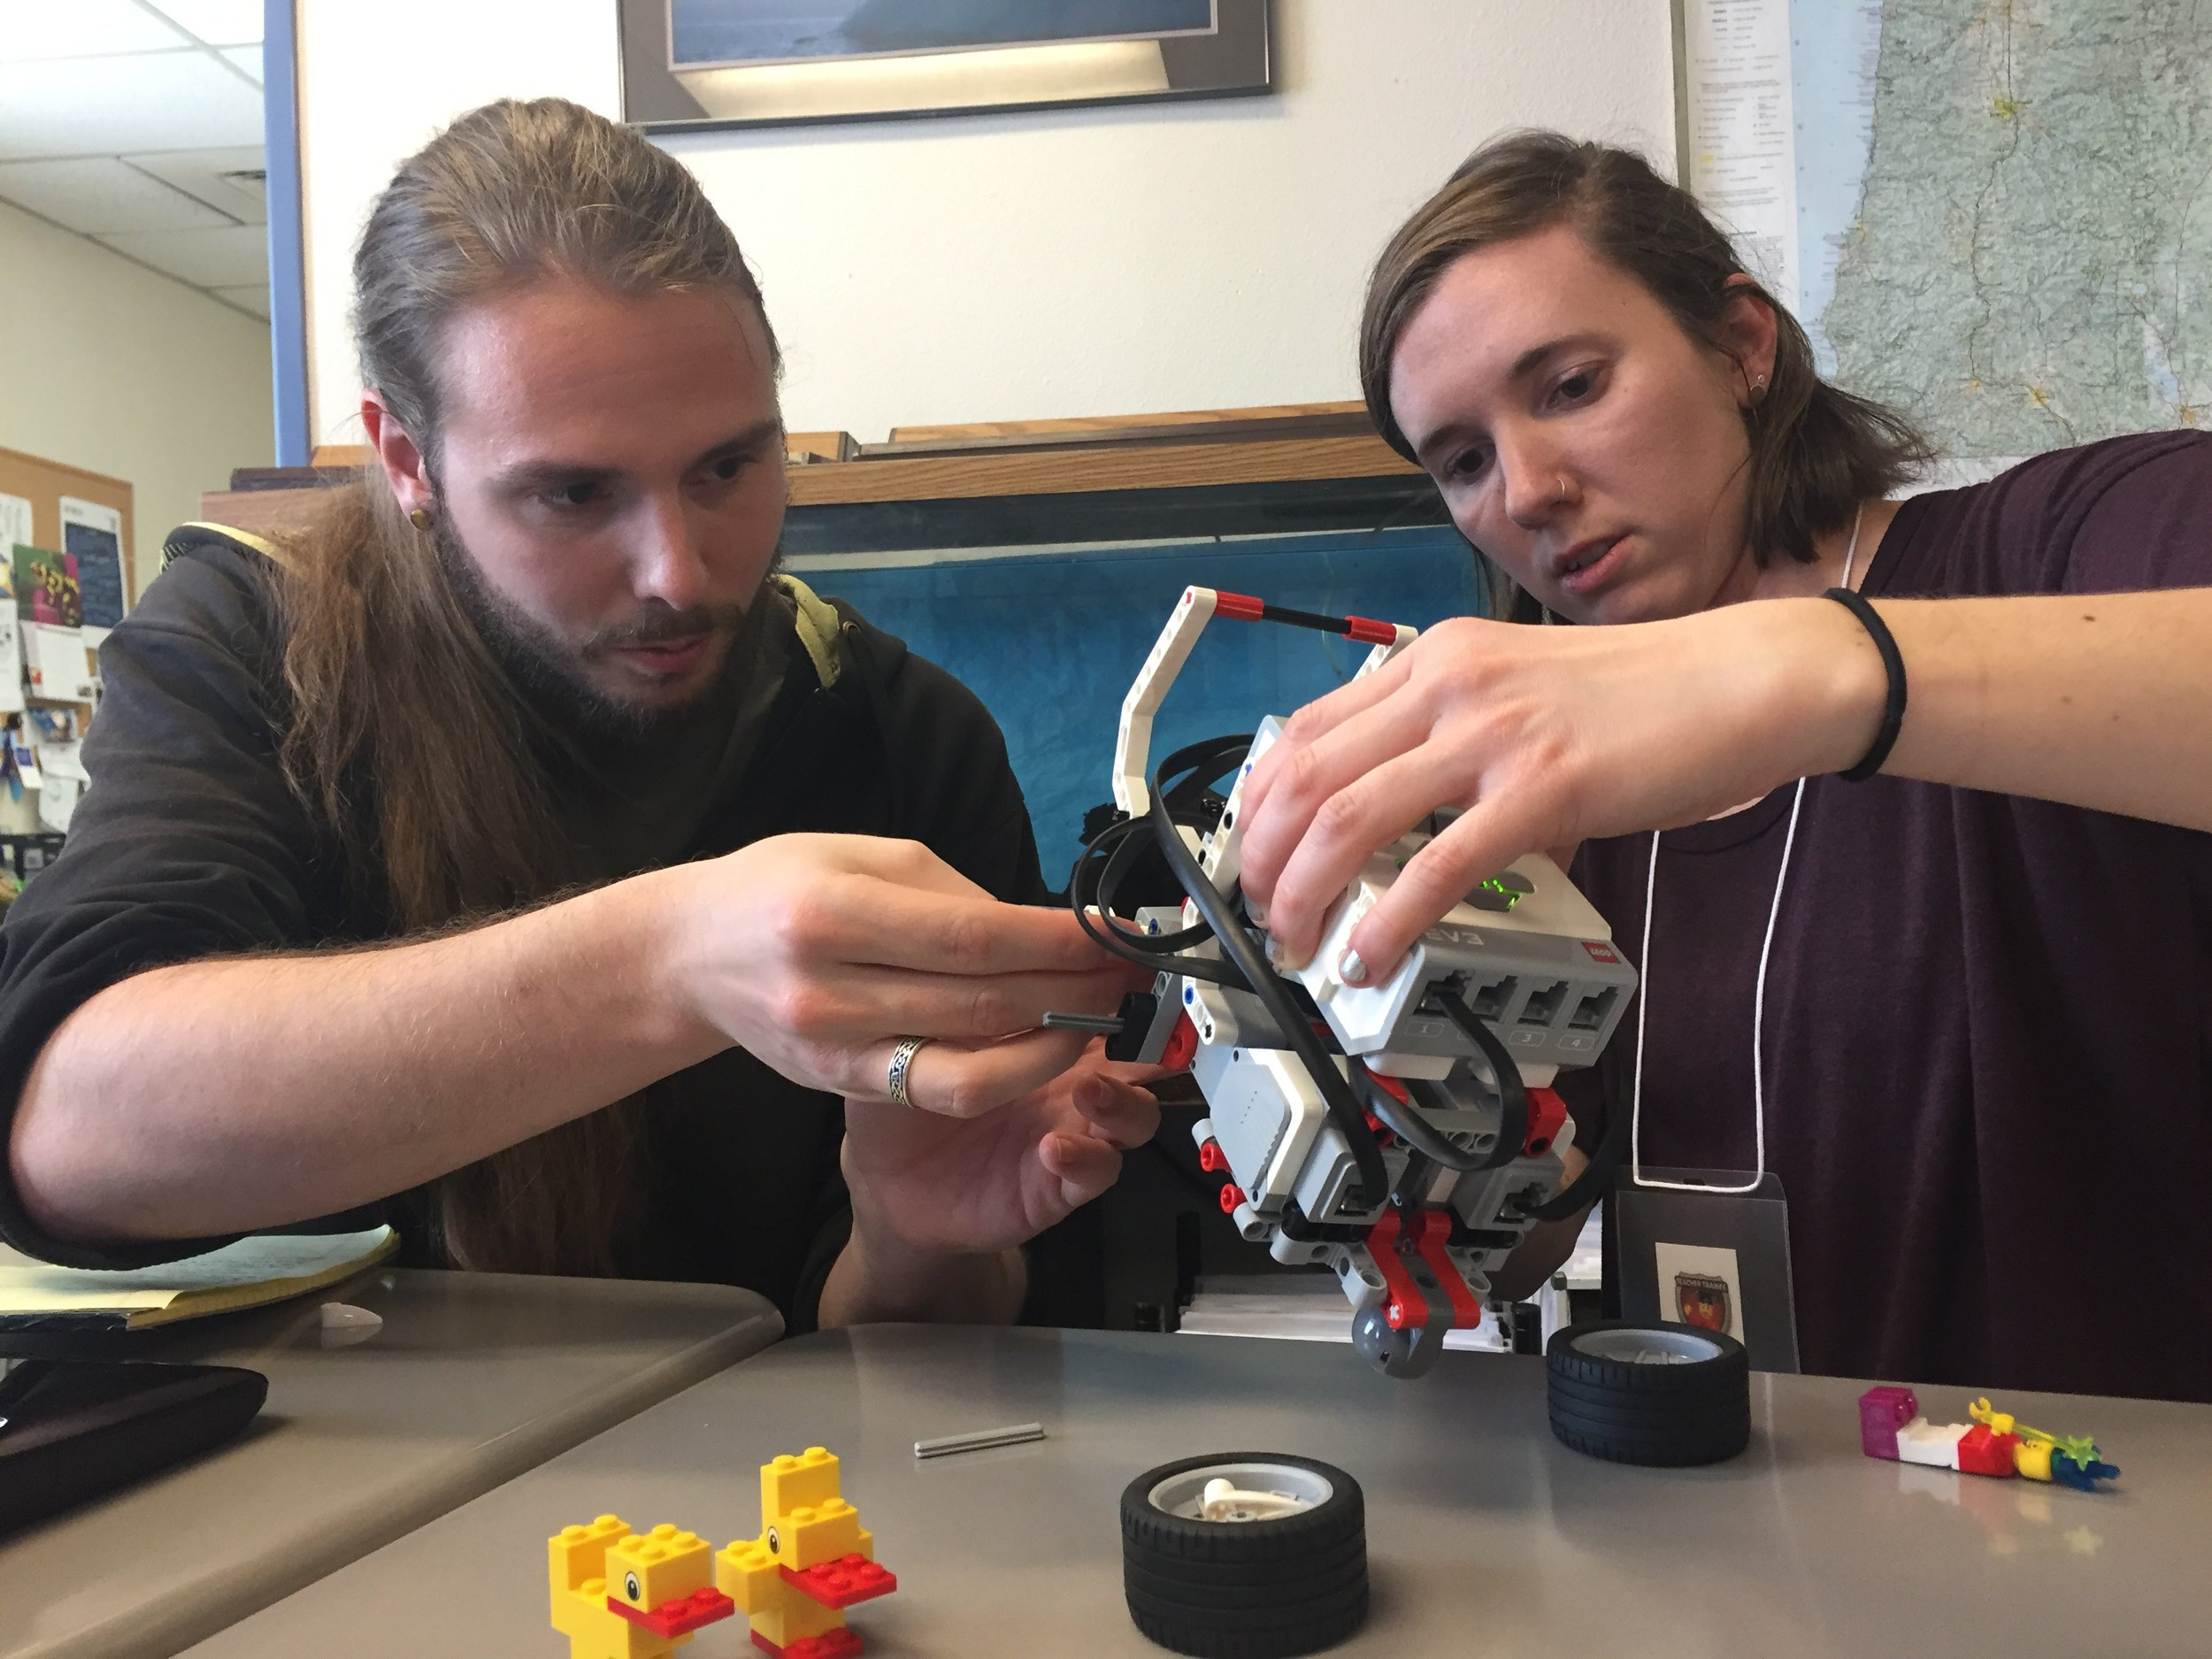 Center Point teachers Dillon Hocket (left) and Megan Reynolds learn how to assemble Lego Mindstorms robotic education tools.